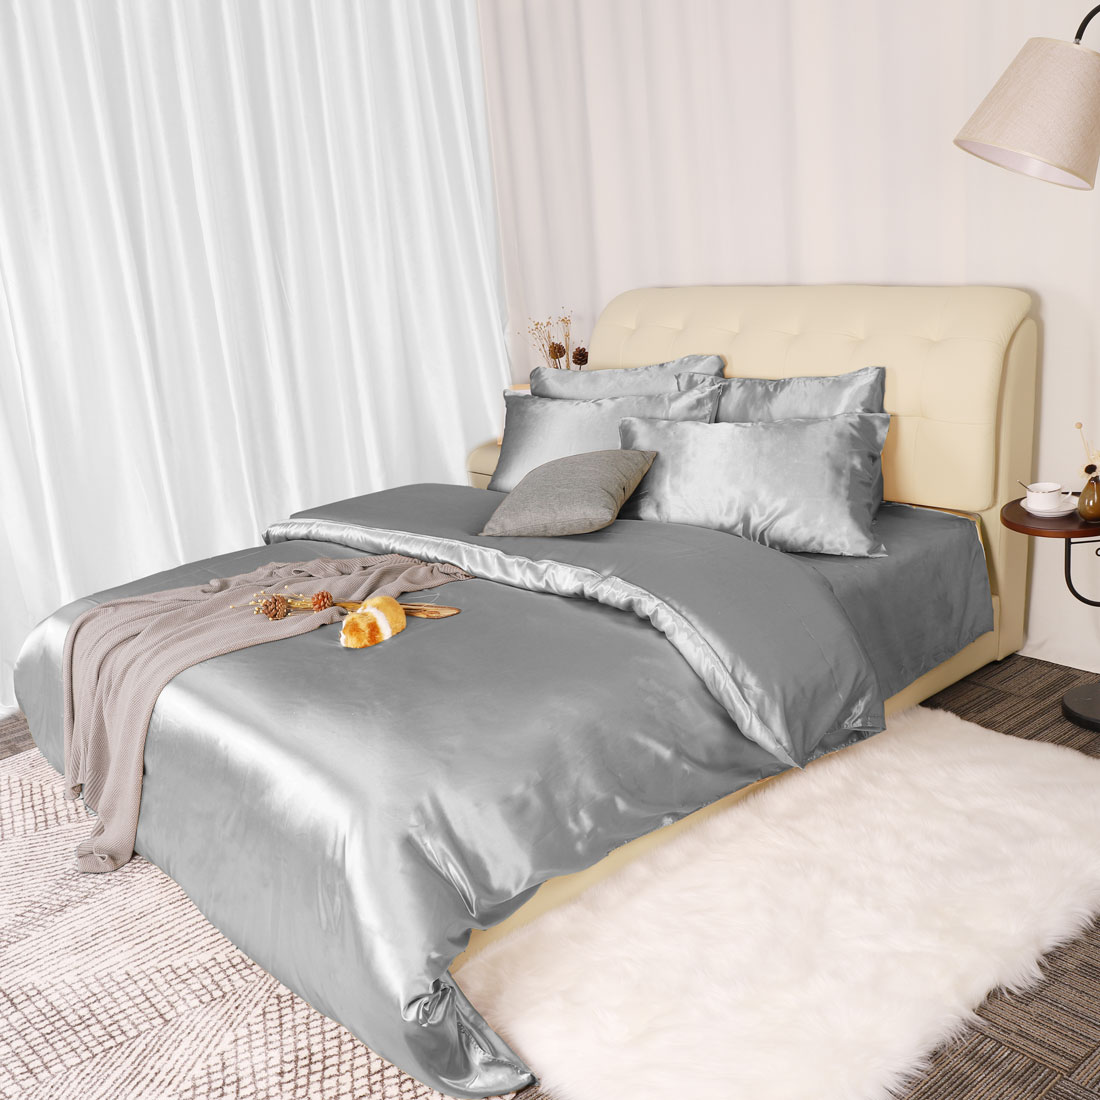 3-Piece-Home-Bedding-Satin-Silk-Duvet-Cover-Set-for-Comforter-Blanket-Three-Size thumbnail 10